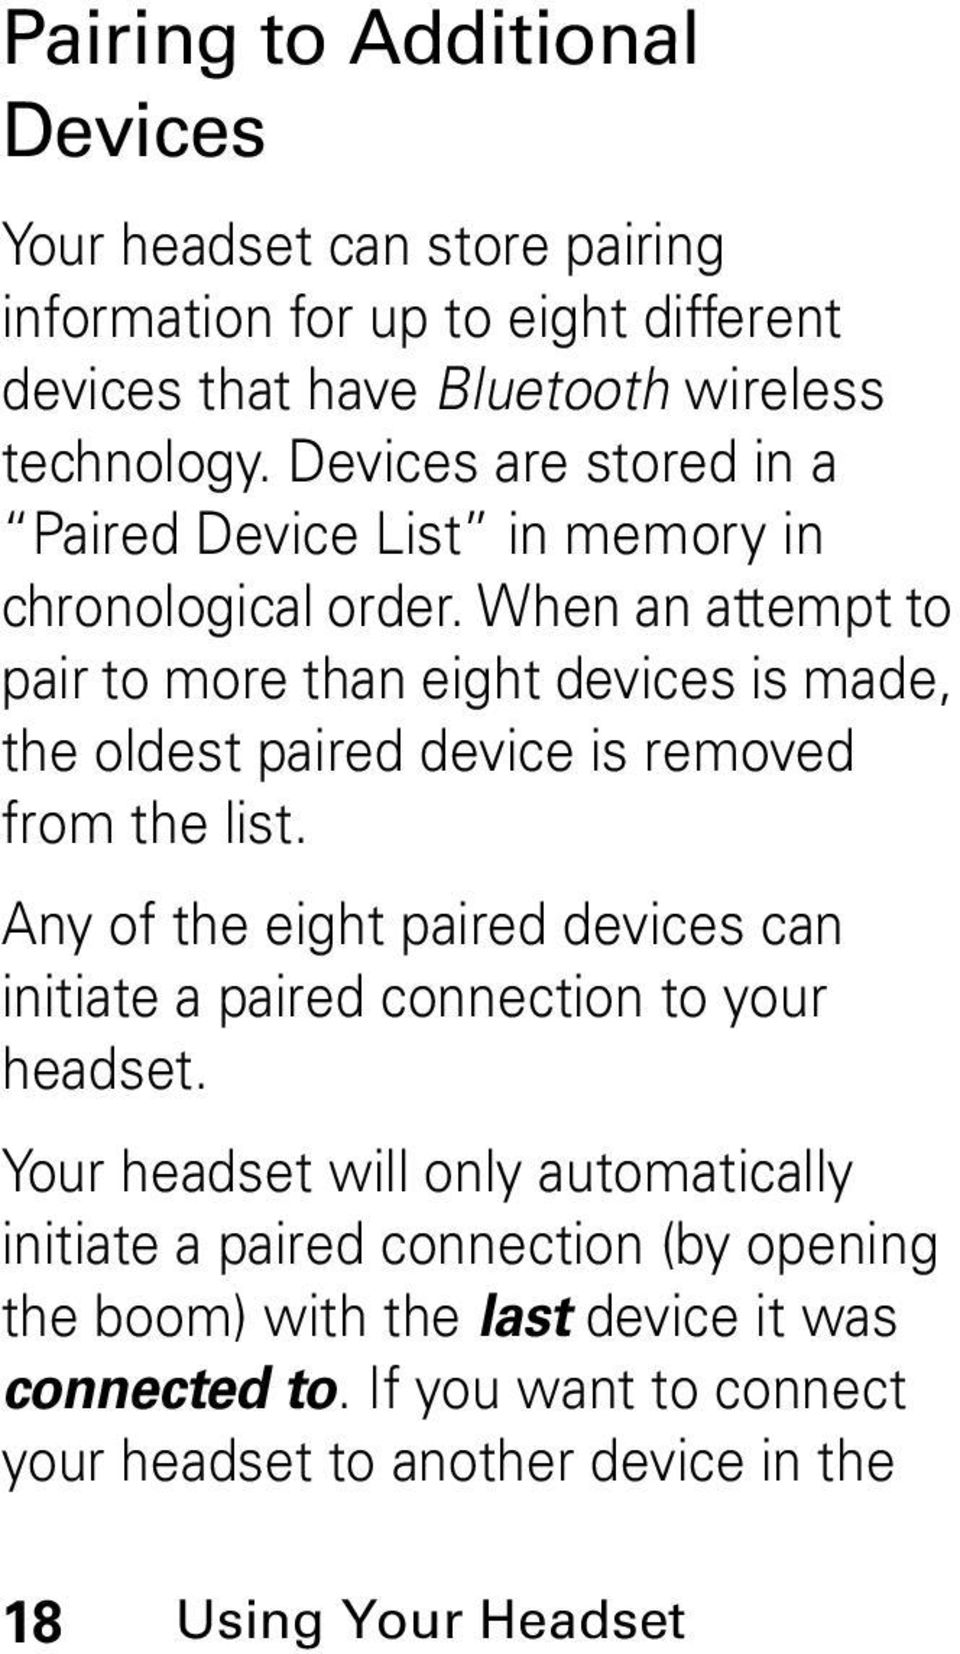 When an attempt to pair to more than eight devices is made, the oldest paired device is removed from the list.